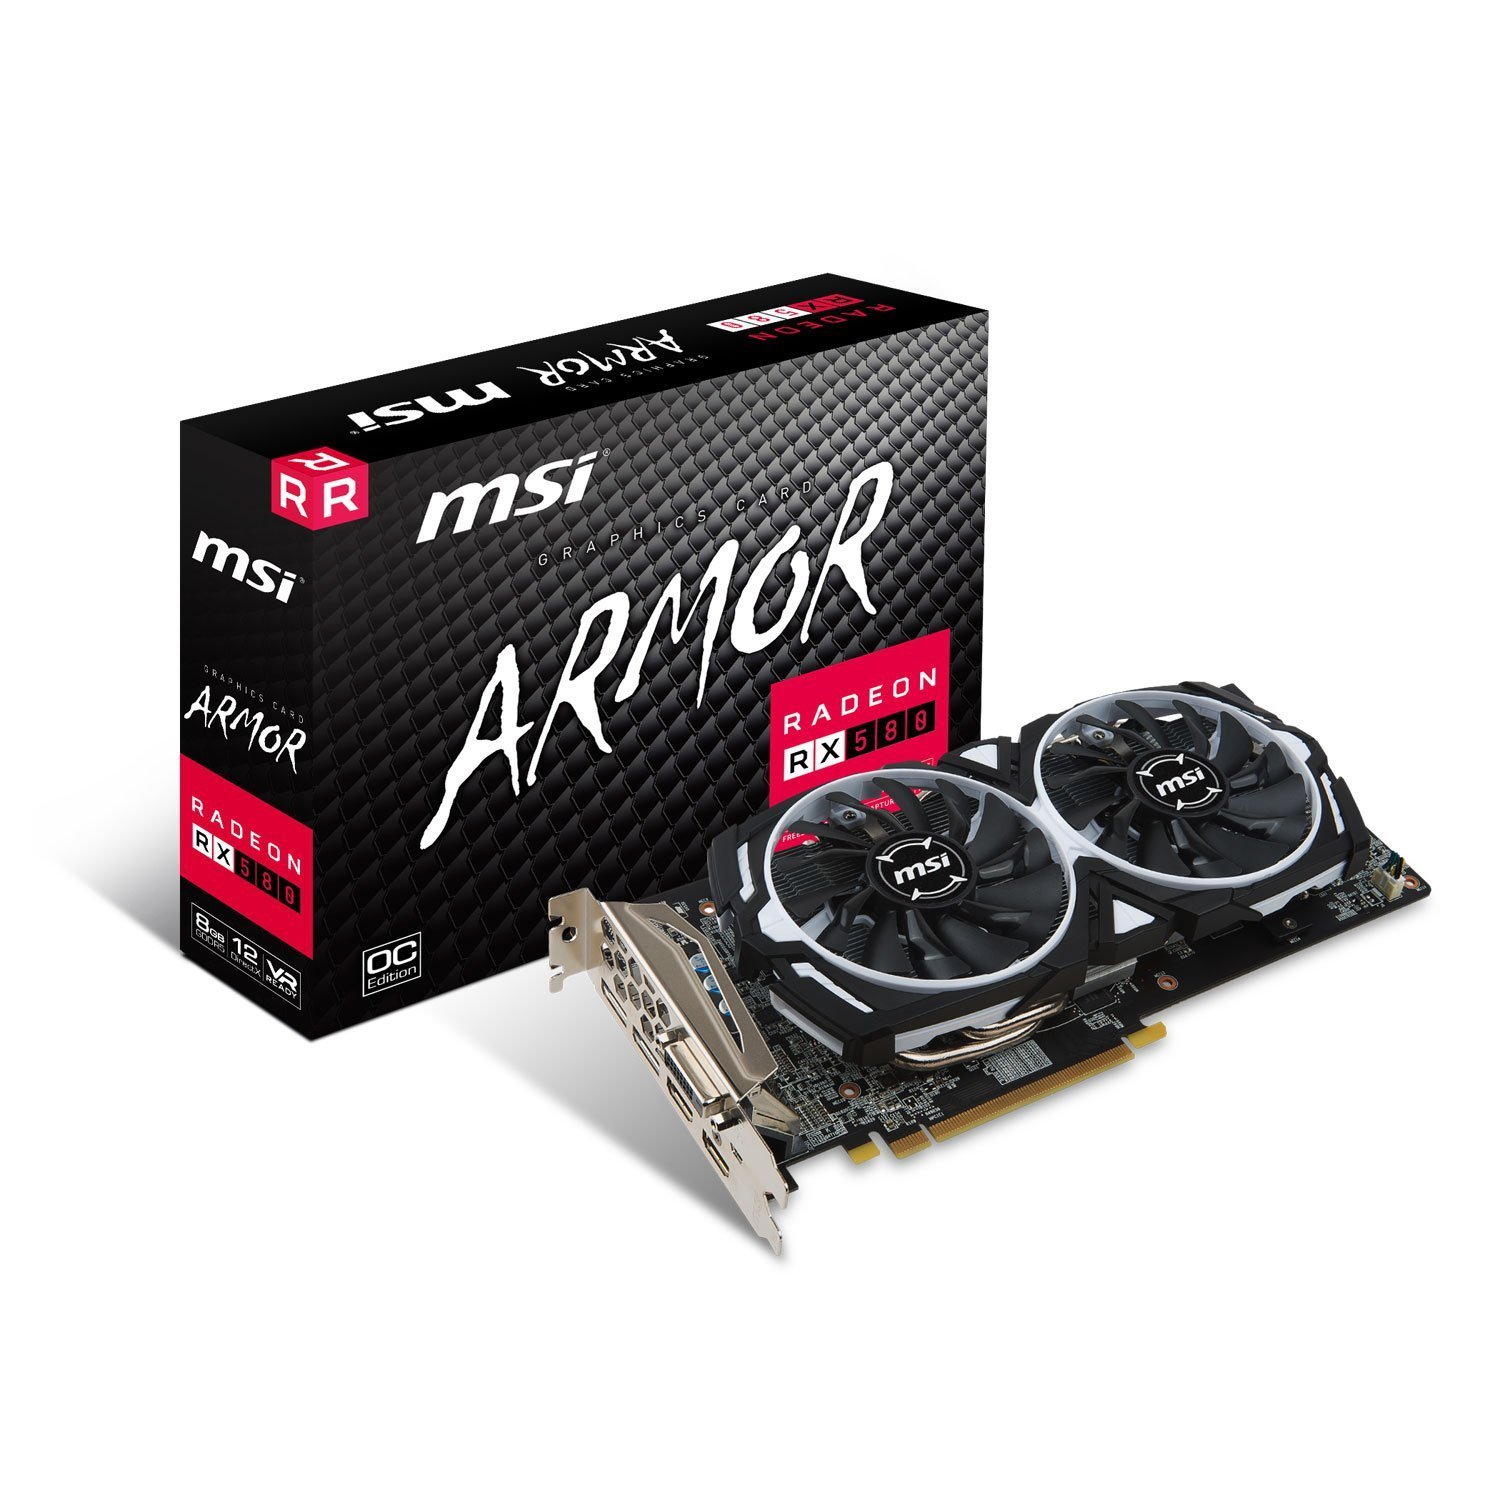 MSI Radeon RX 580 ARMOR 8G OC  8192MB,PCI-E,DVI,HDMI,DP video karte